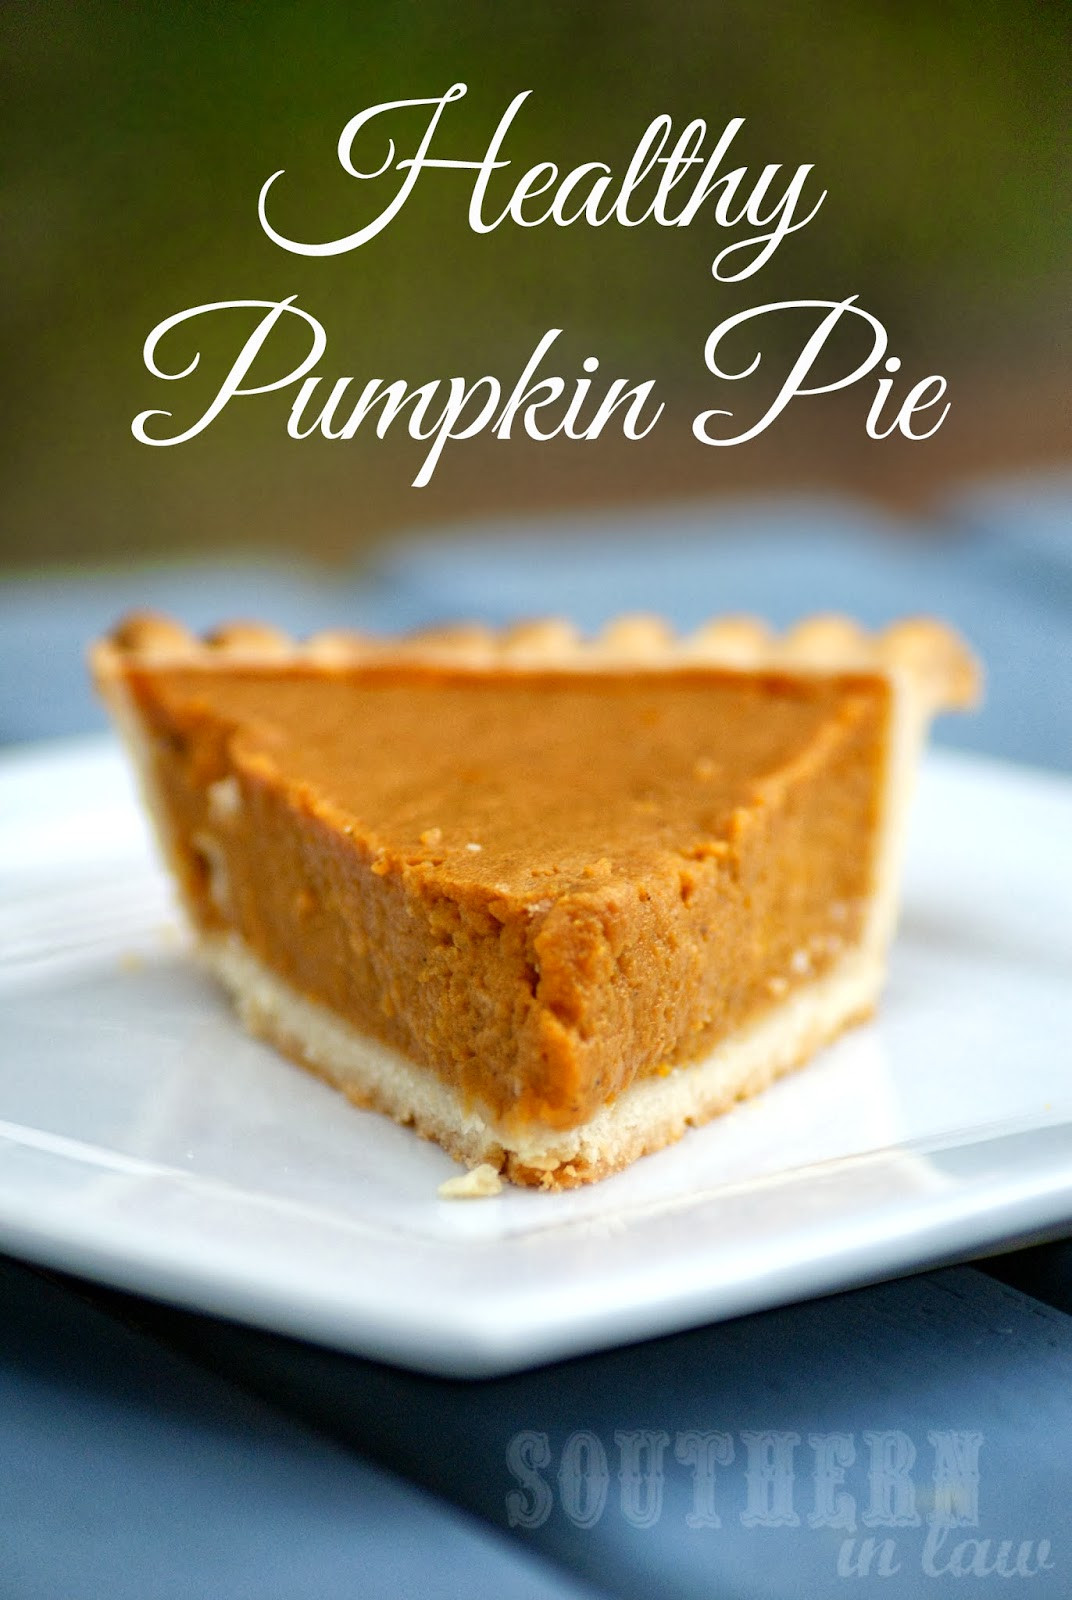 Low Fat Pumpkin Pie Recipe  Southern In Law Healthy Pumpkin Pie Recipe